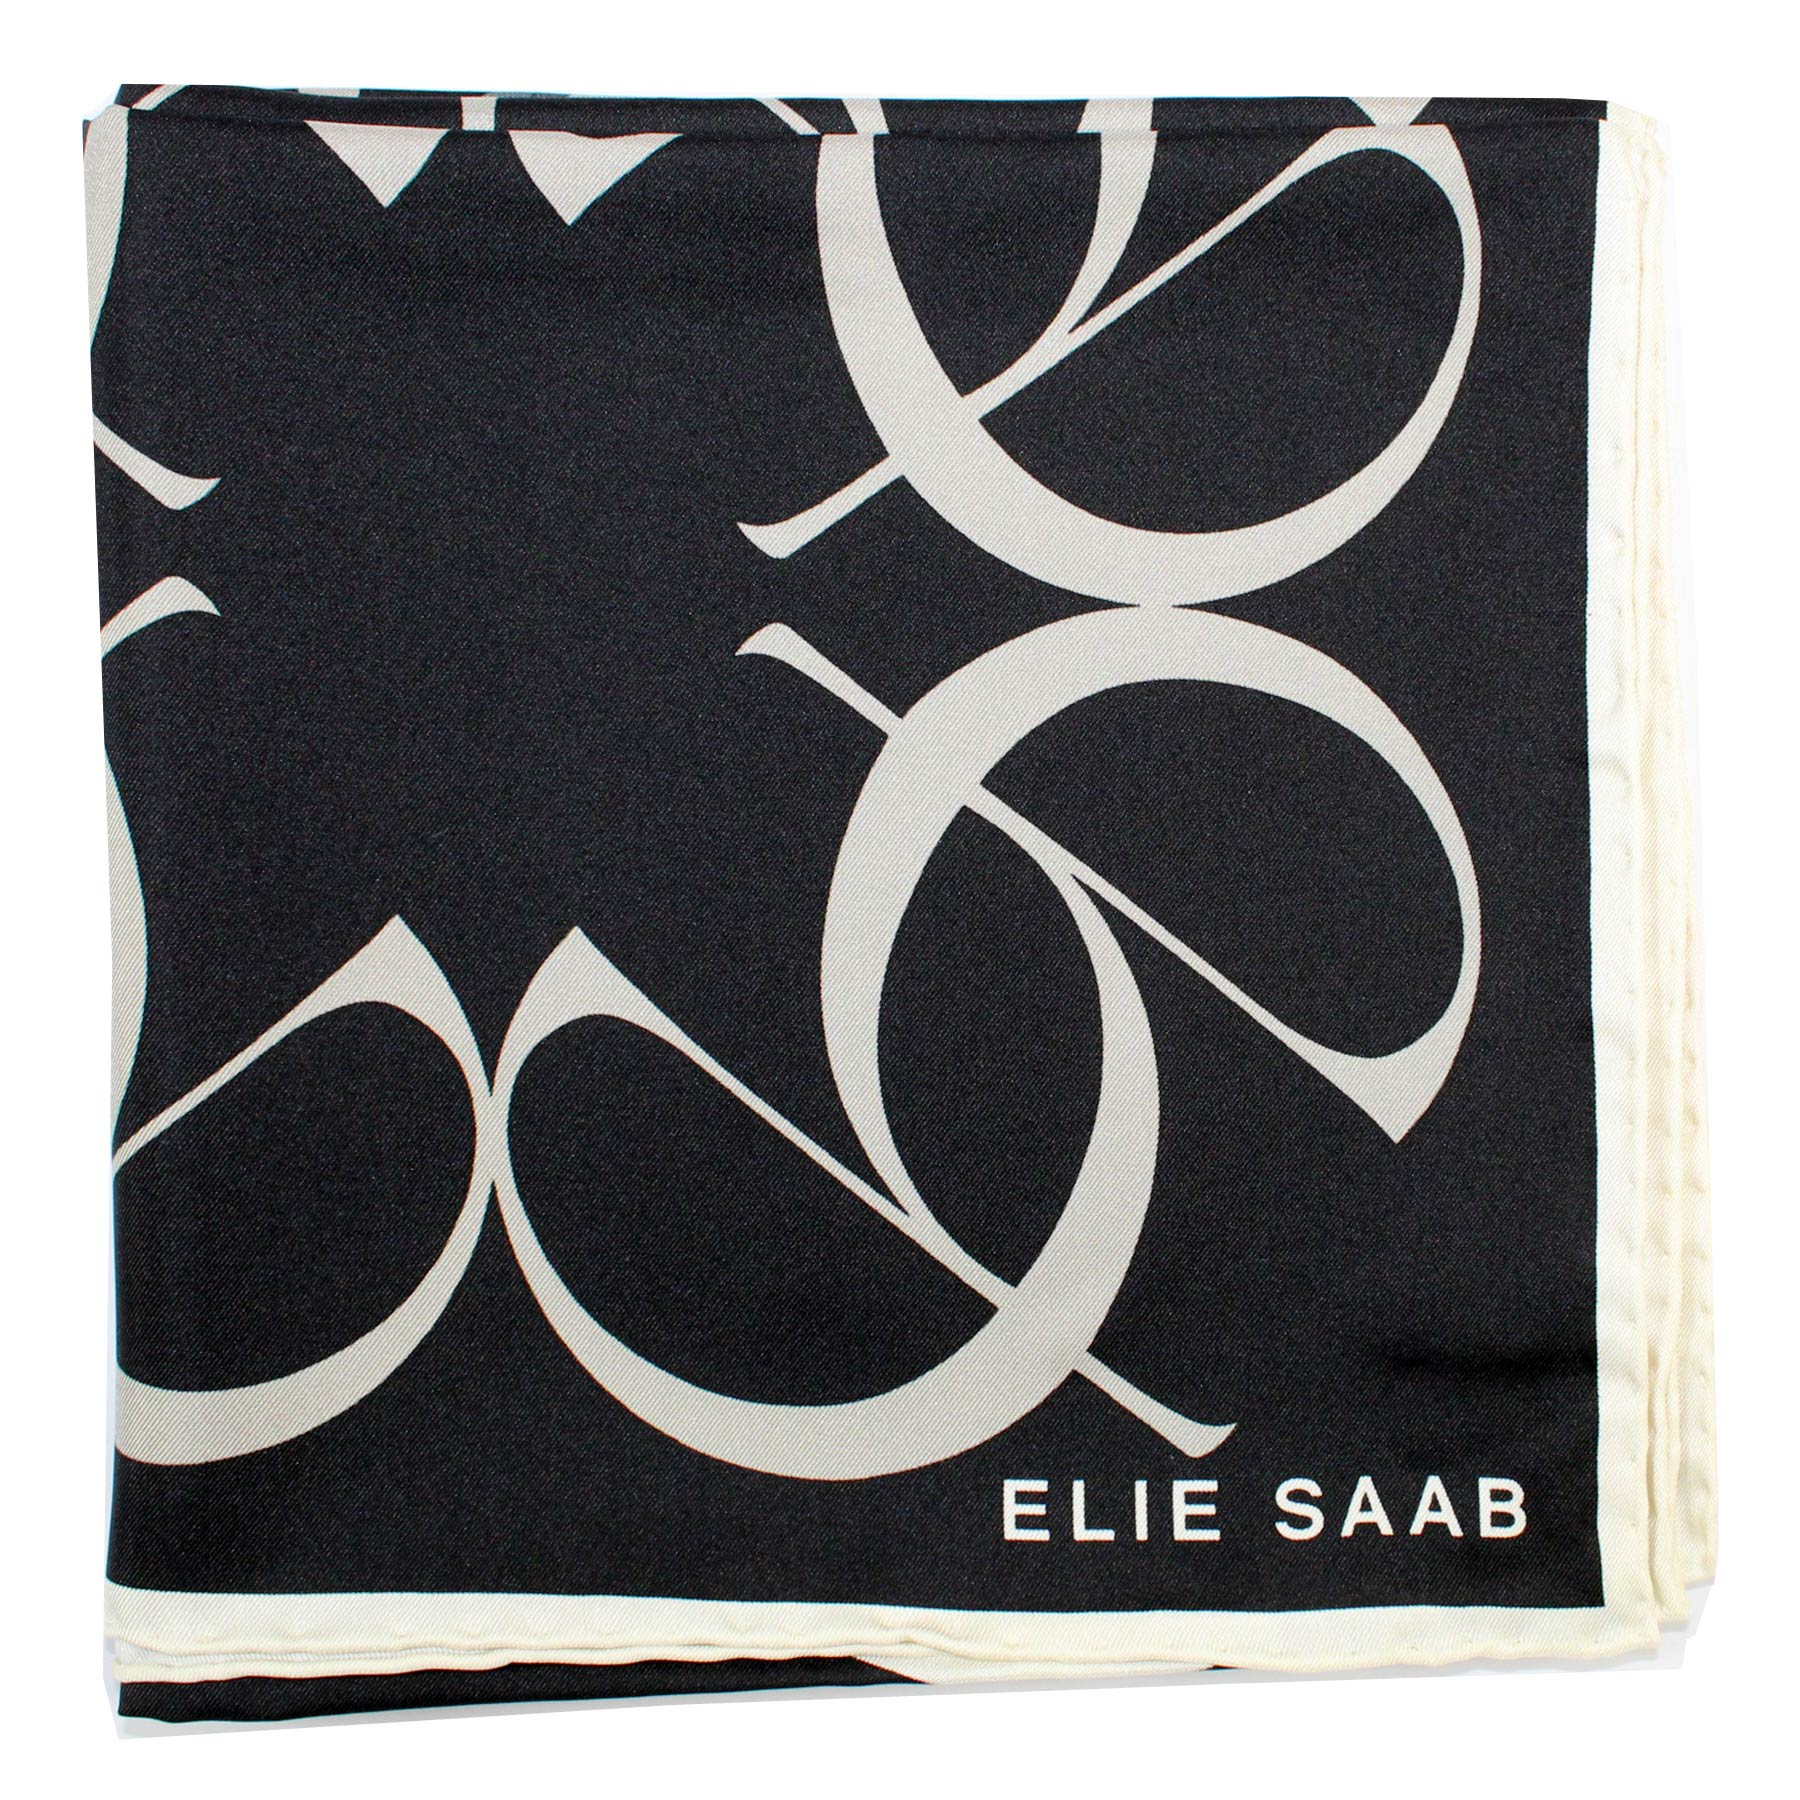 Elie Saab Scarf Black Gray Logo Letters Design - Large Twill Silk Square Scarf